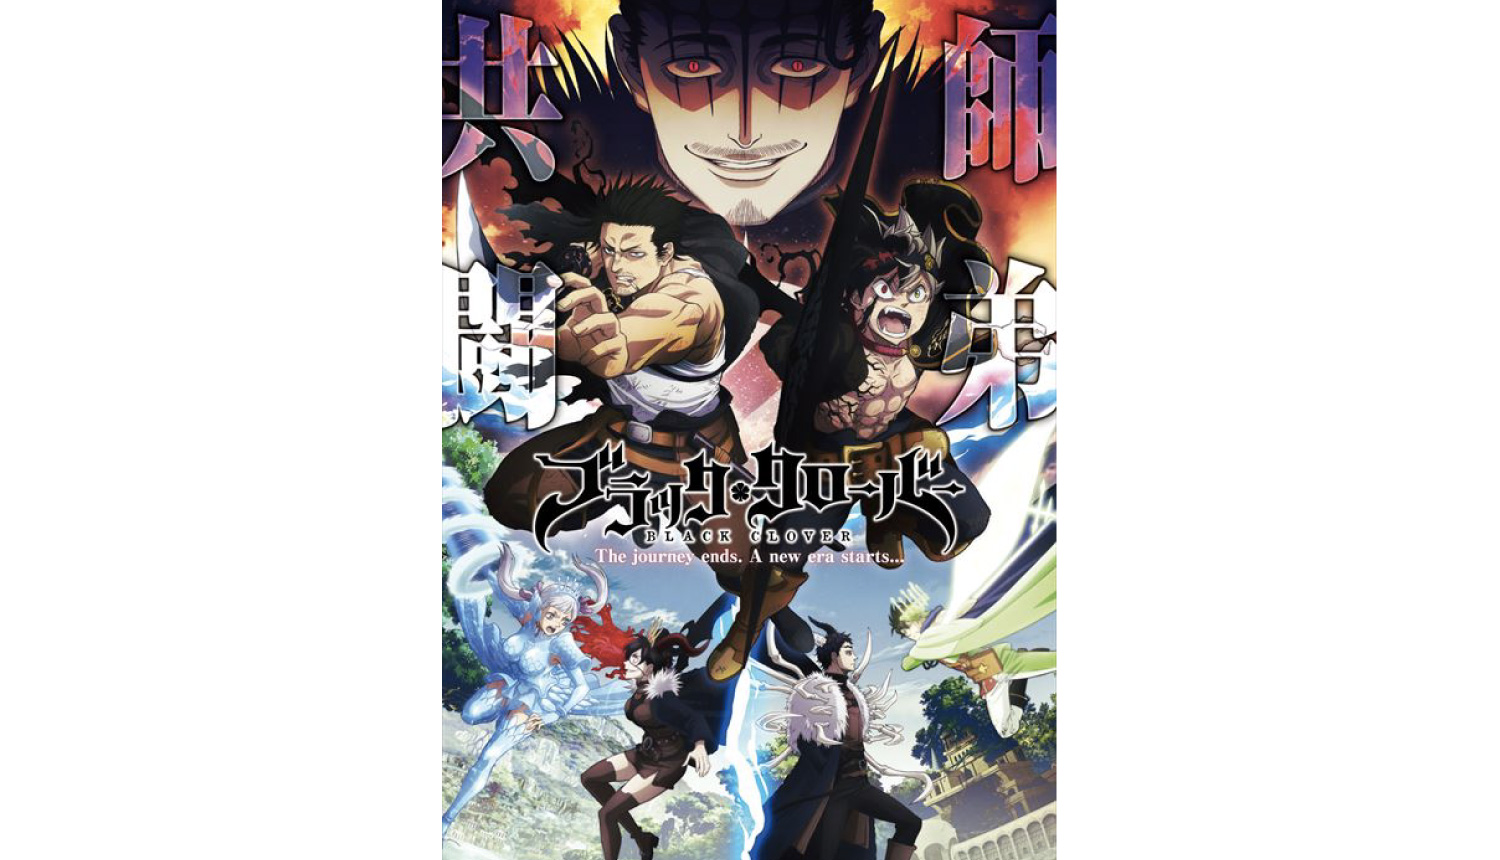 Black Clover Anime S Opening Theme By Snow Man Special Music Video Released Moshi Moshi Nippon もしもしにっぽん